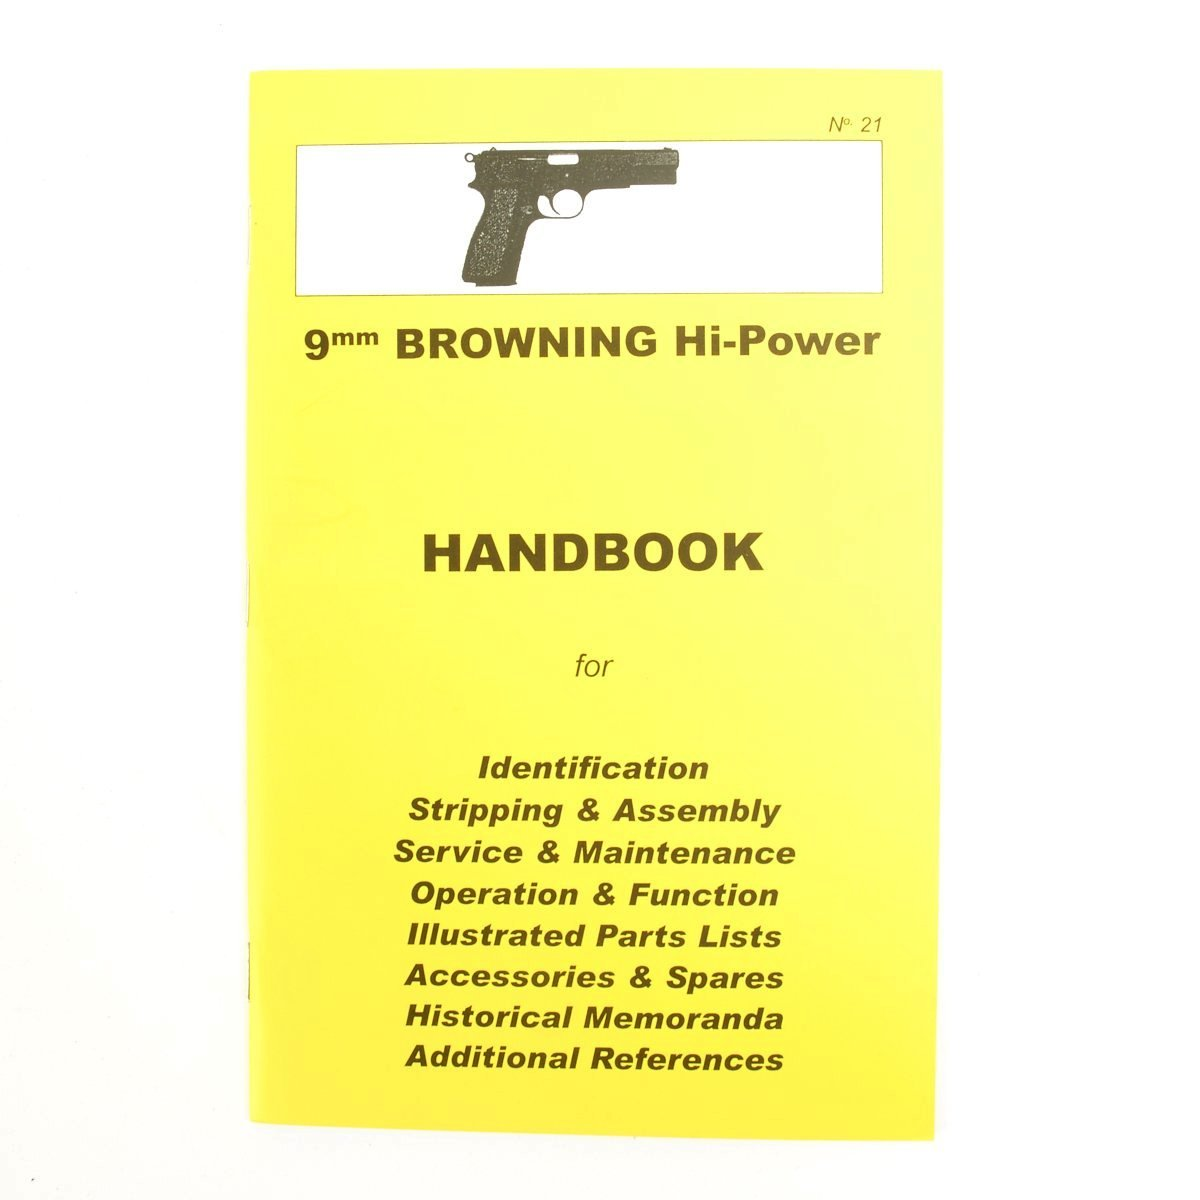 https://www ima-usa com/products/book-small-arms-id-by-ian